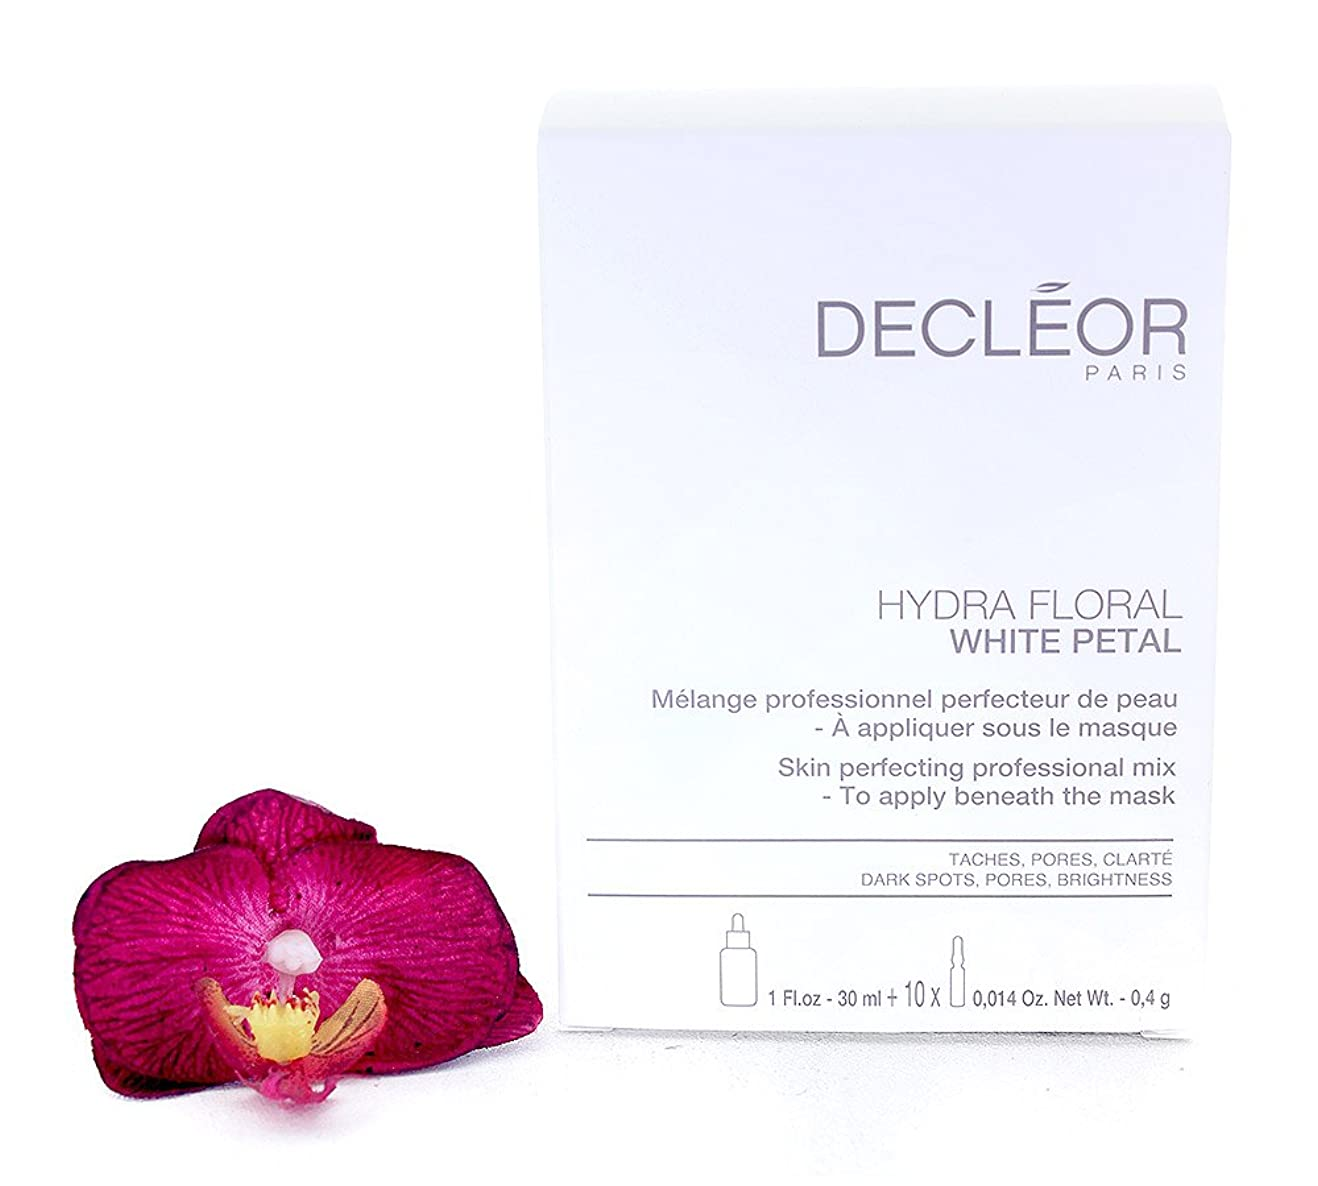 急降下区画お尻デクレオール Hydra Floral White Petal Skin Perfecting Professional Mix (1x Concentrate 30ml, 10x Powder 4g) - Salon Product -並行輸入品